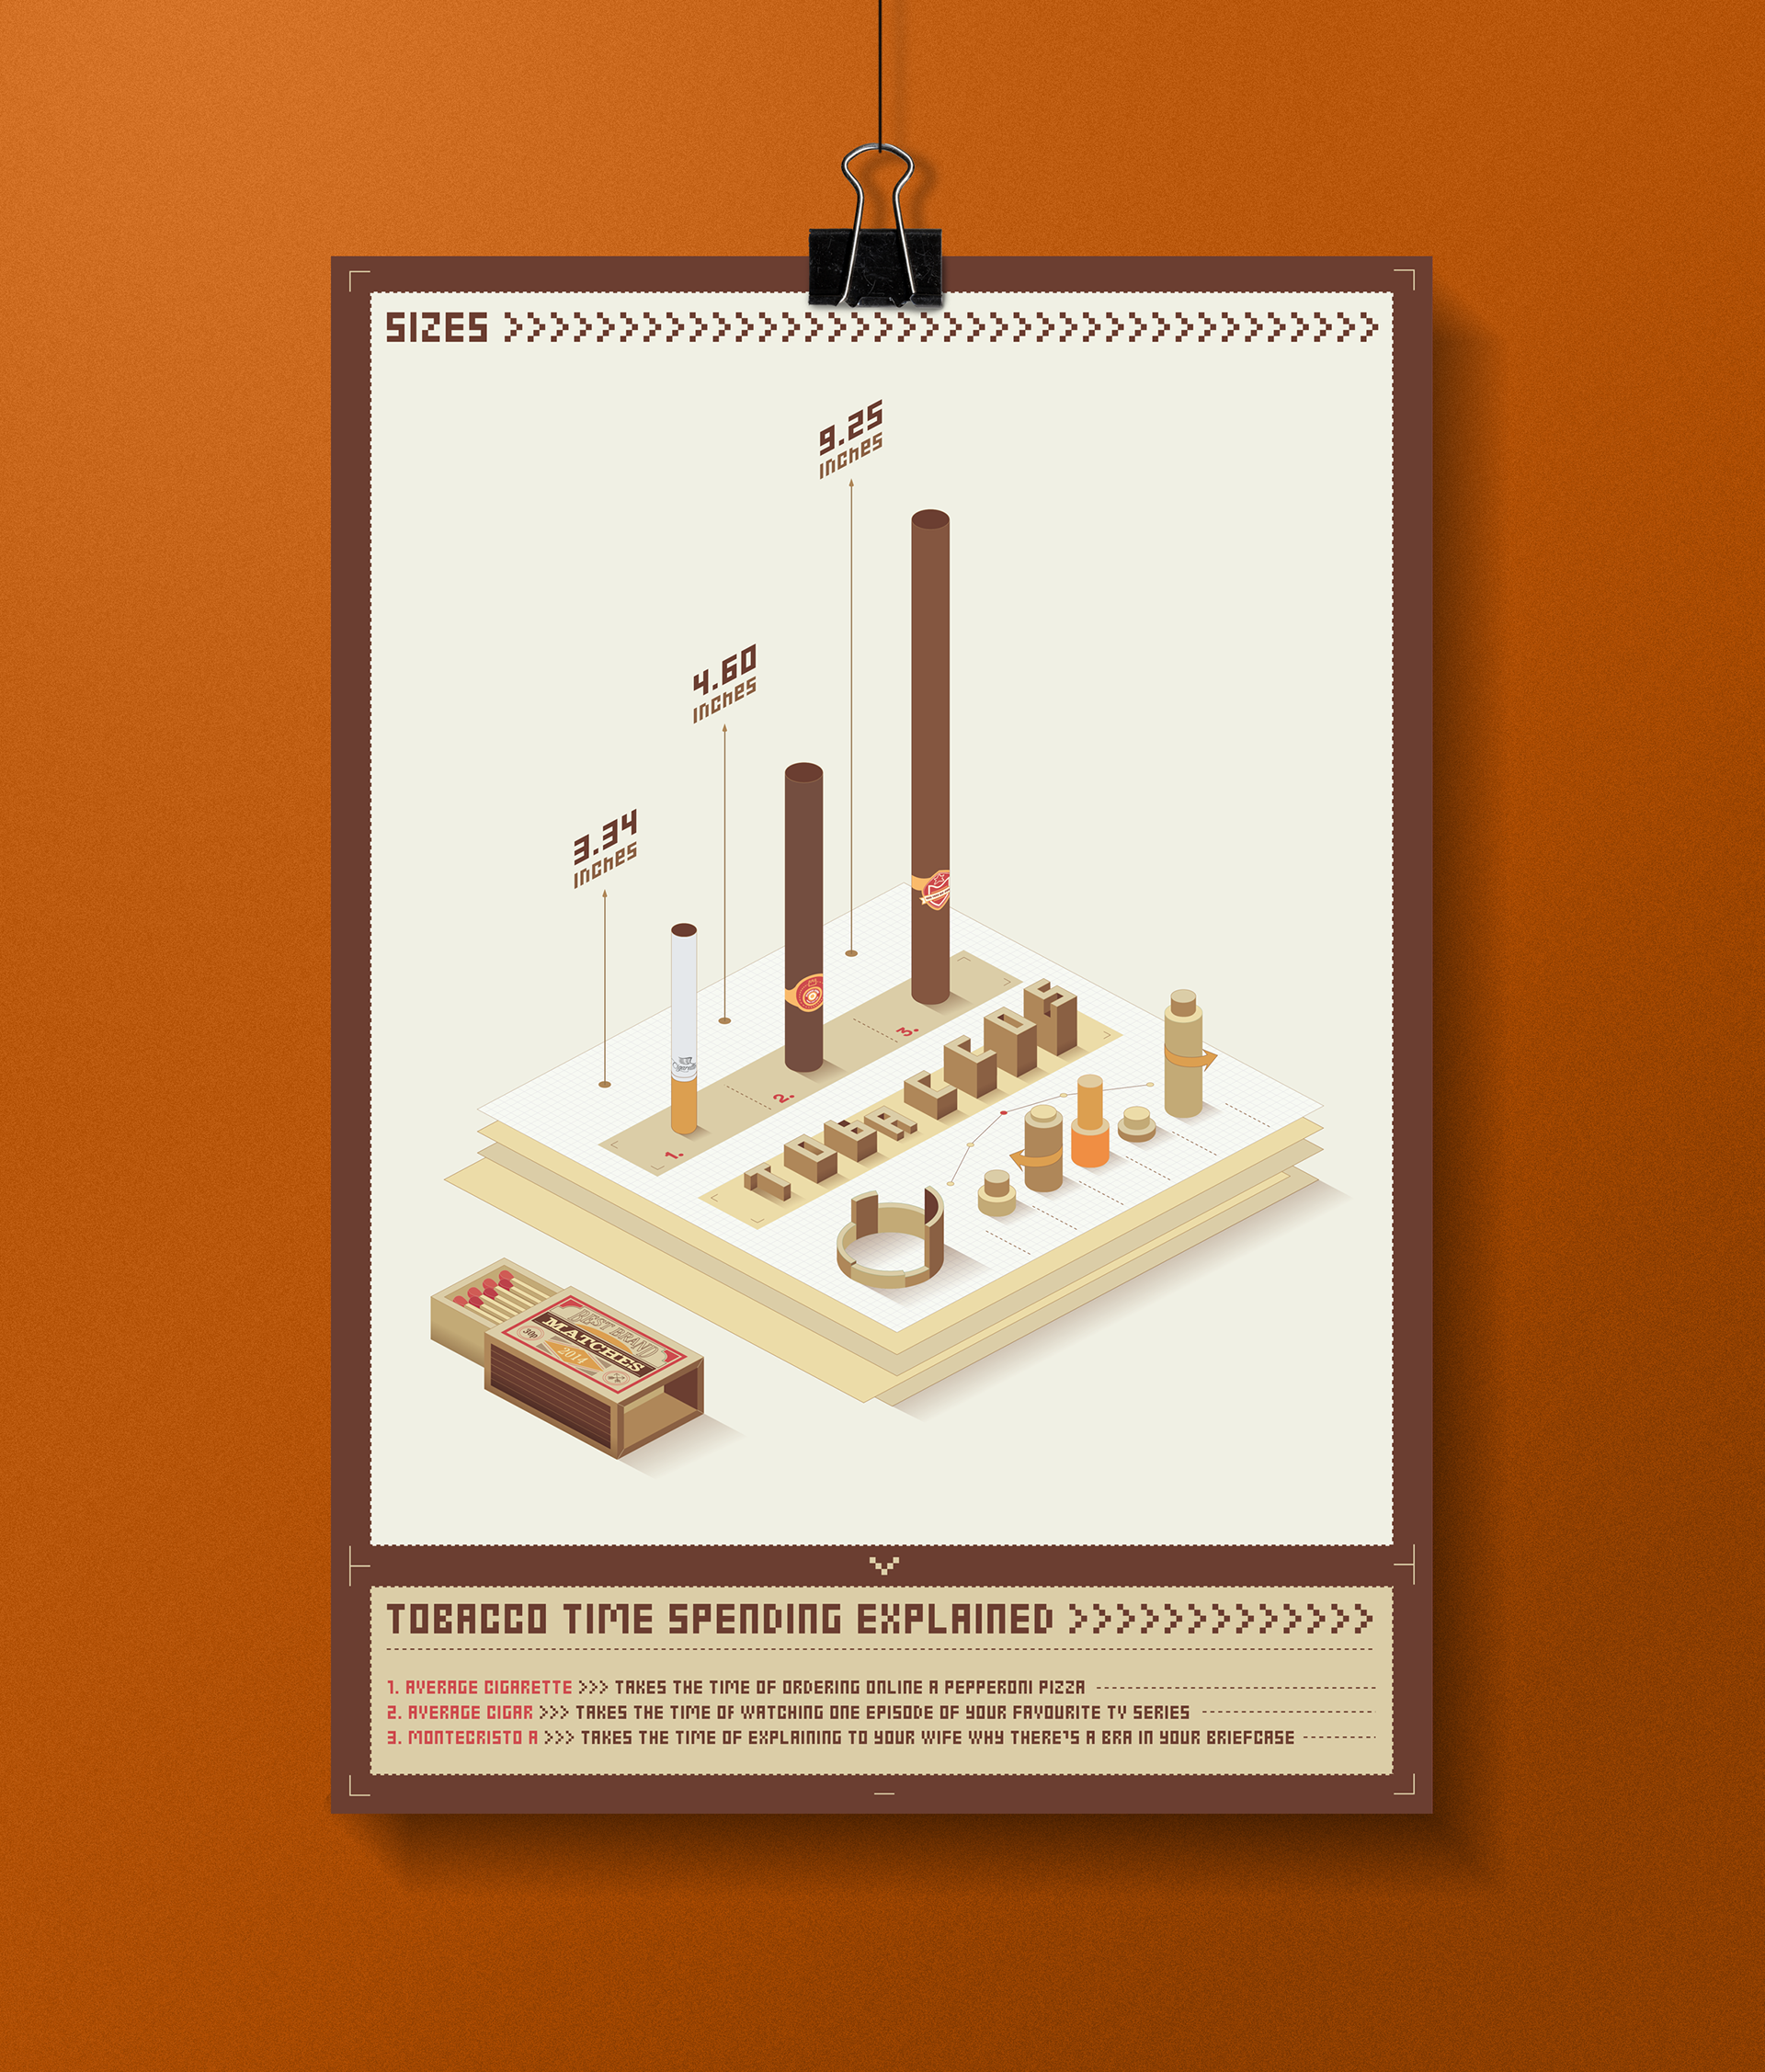 SIZES - When size matters on Behance